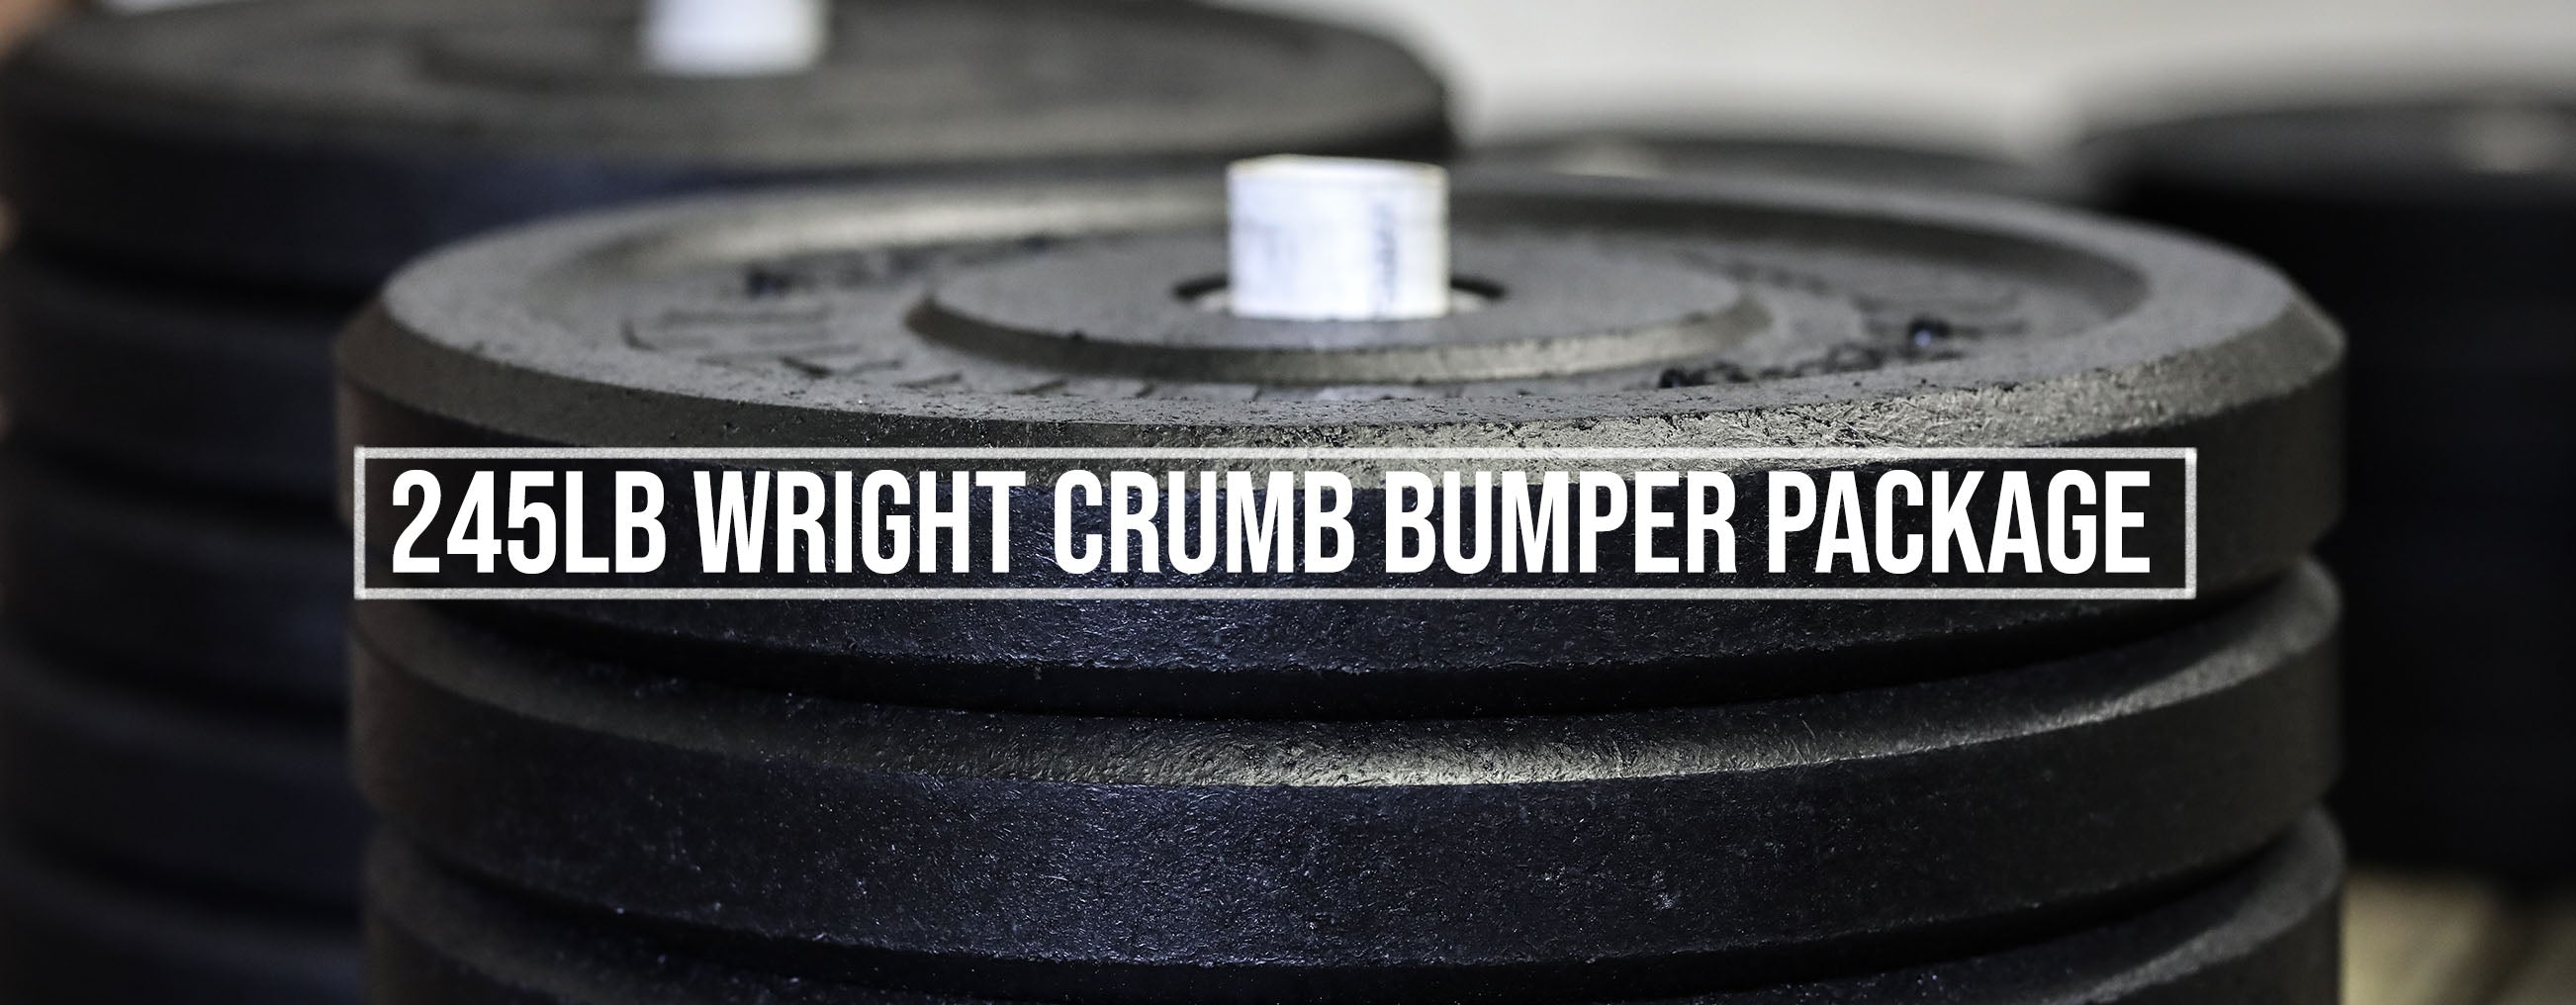 245lb Crumb bumper package